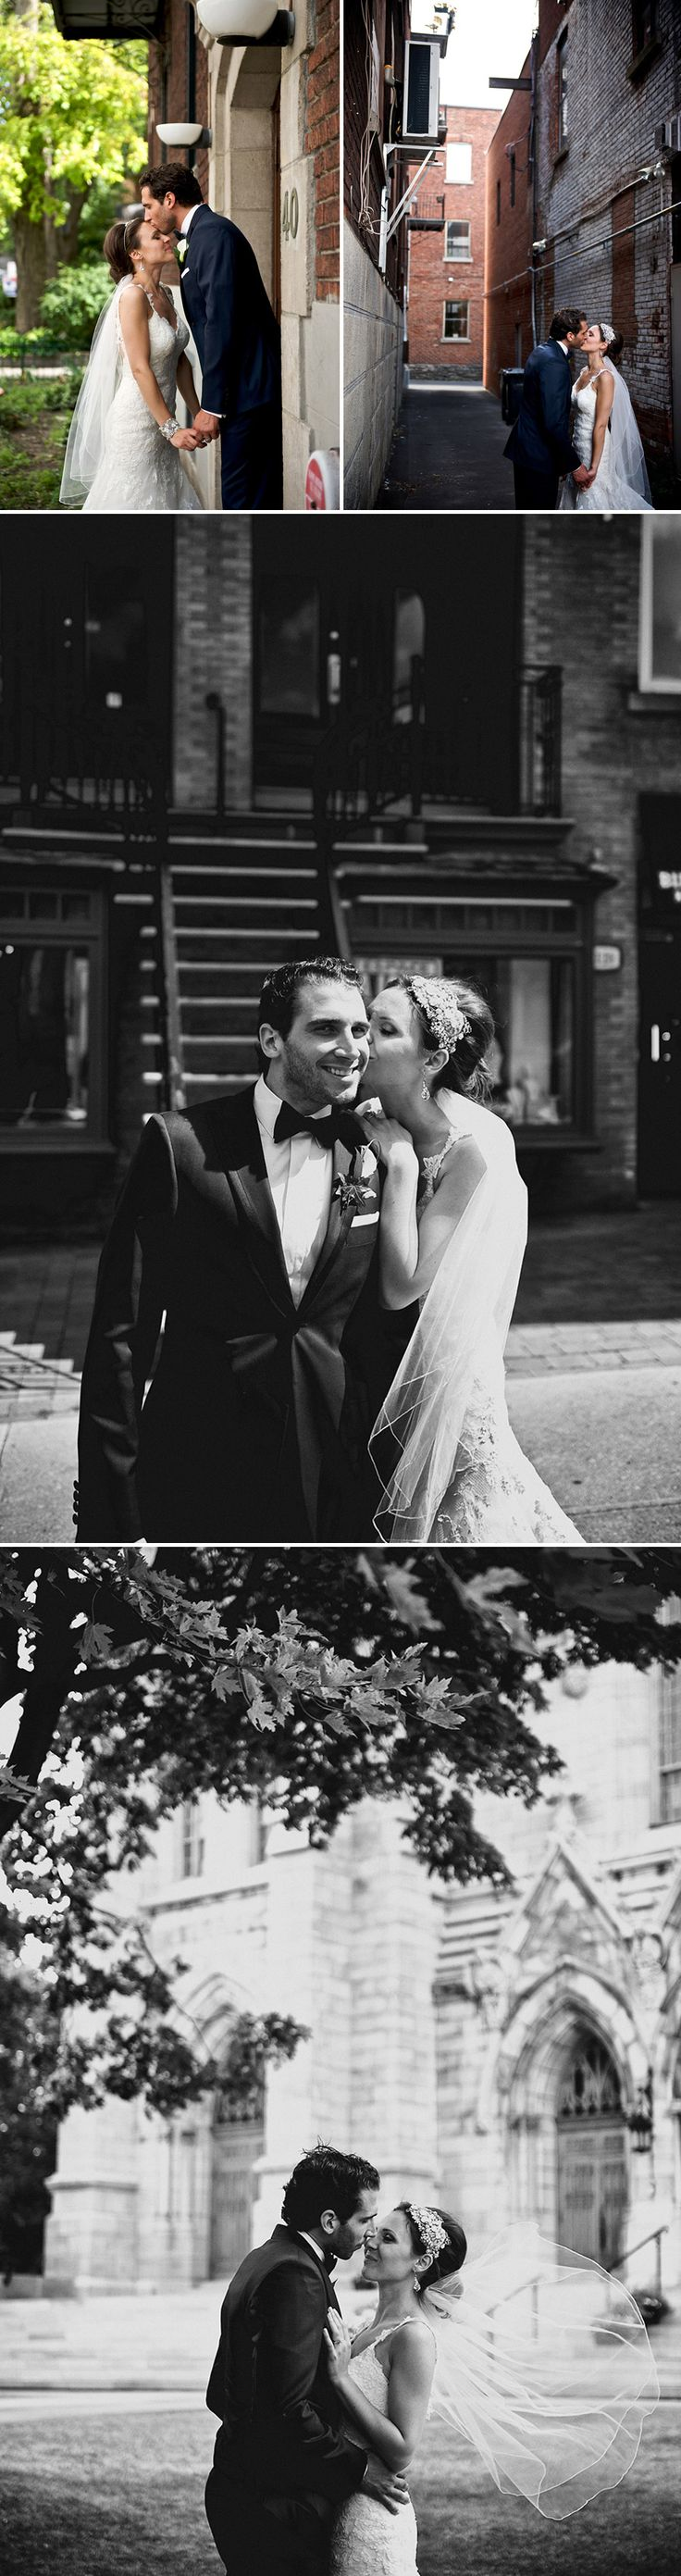 Christina and Leo wedding at Mirage Golf Club | Published in Wedluxe | Urban Wedding Photography in Montreal